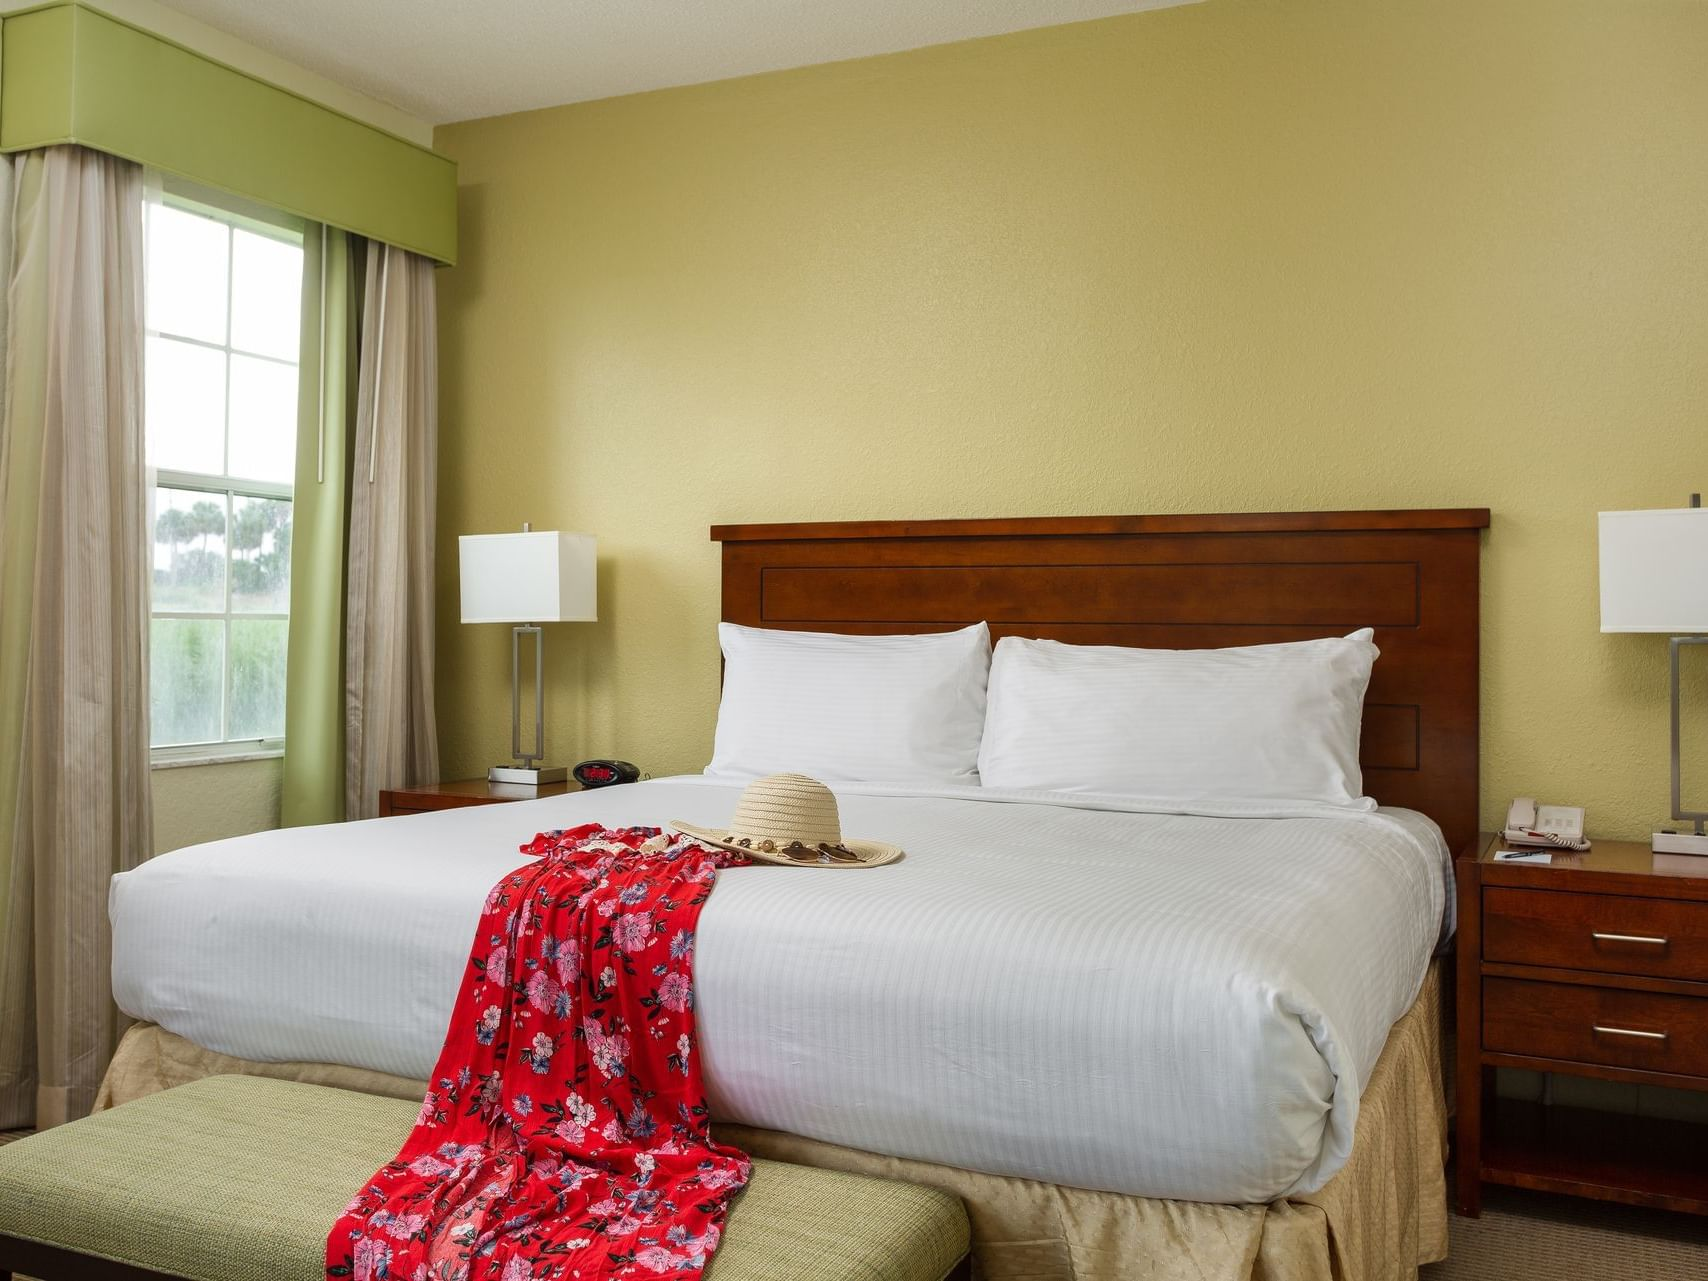 Two Bedroom Standard Room with one bed at Mystic Dunes Resort